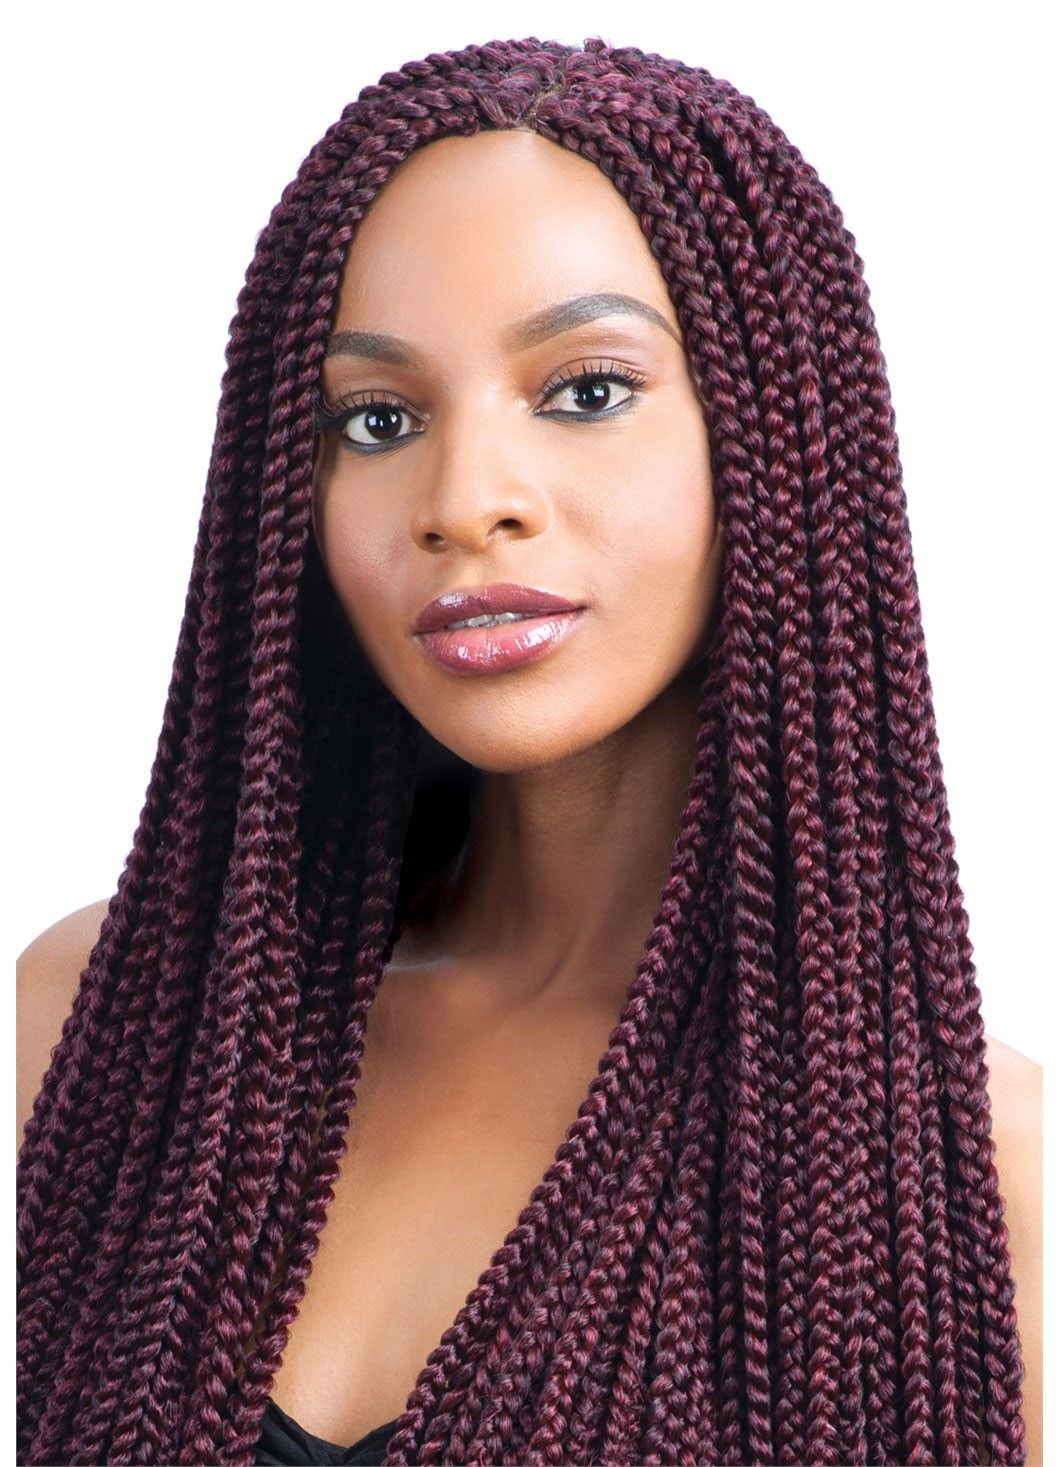 Model Model Glance Braid LONG MEDIUM BOX BRAID (Crochet